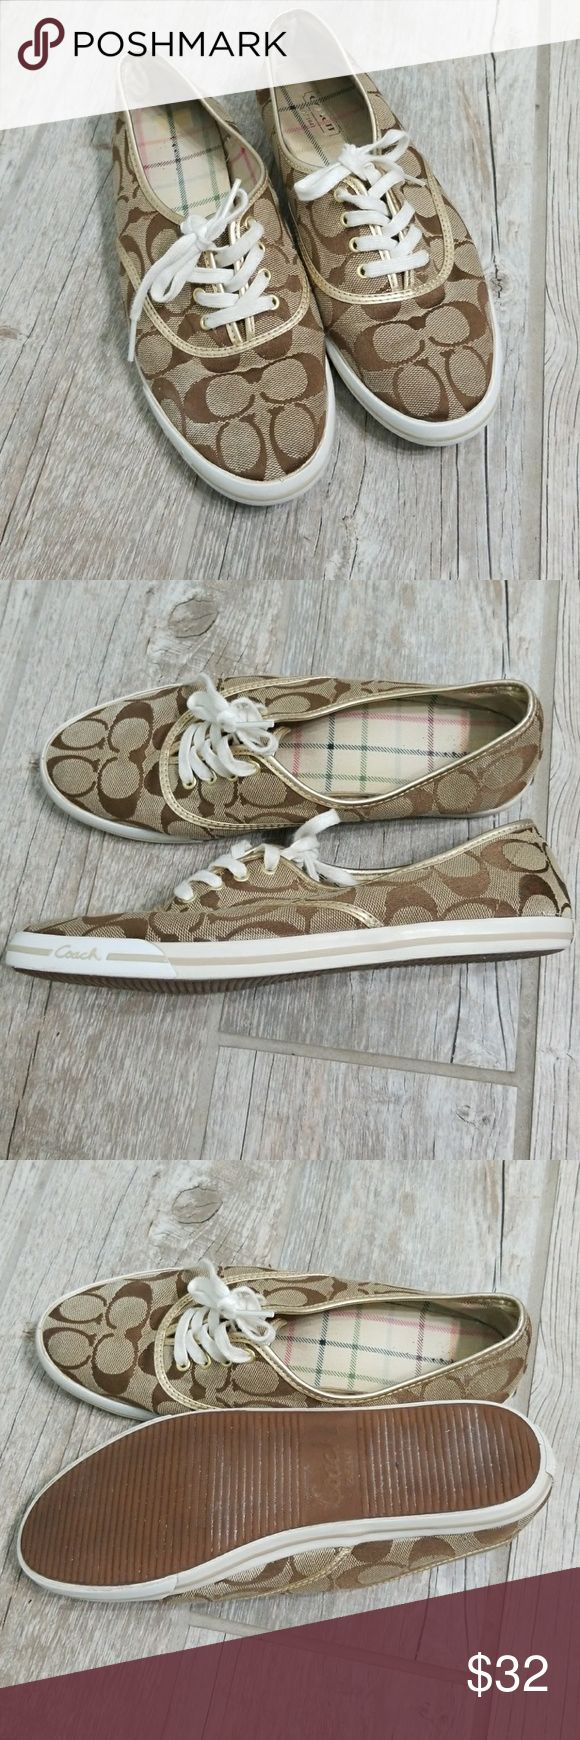 Coach tennis shoes Audrina brown with gold trimming C logo signature canvas Really cute and comfortable. Size 7.5 inside of sole is a little dirty due to normal wear no RIPS. Coach Shoes Flats & Loafers